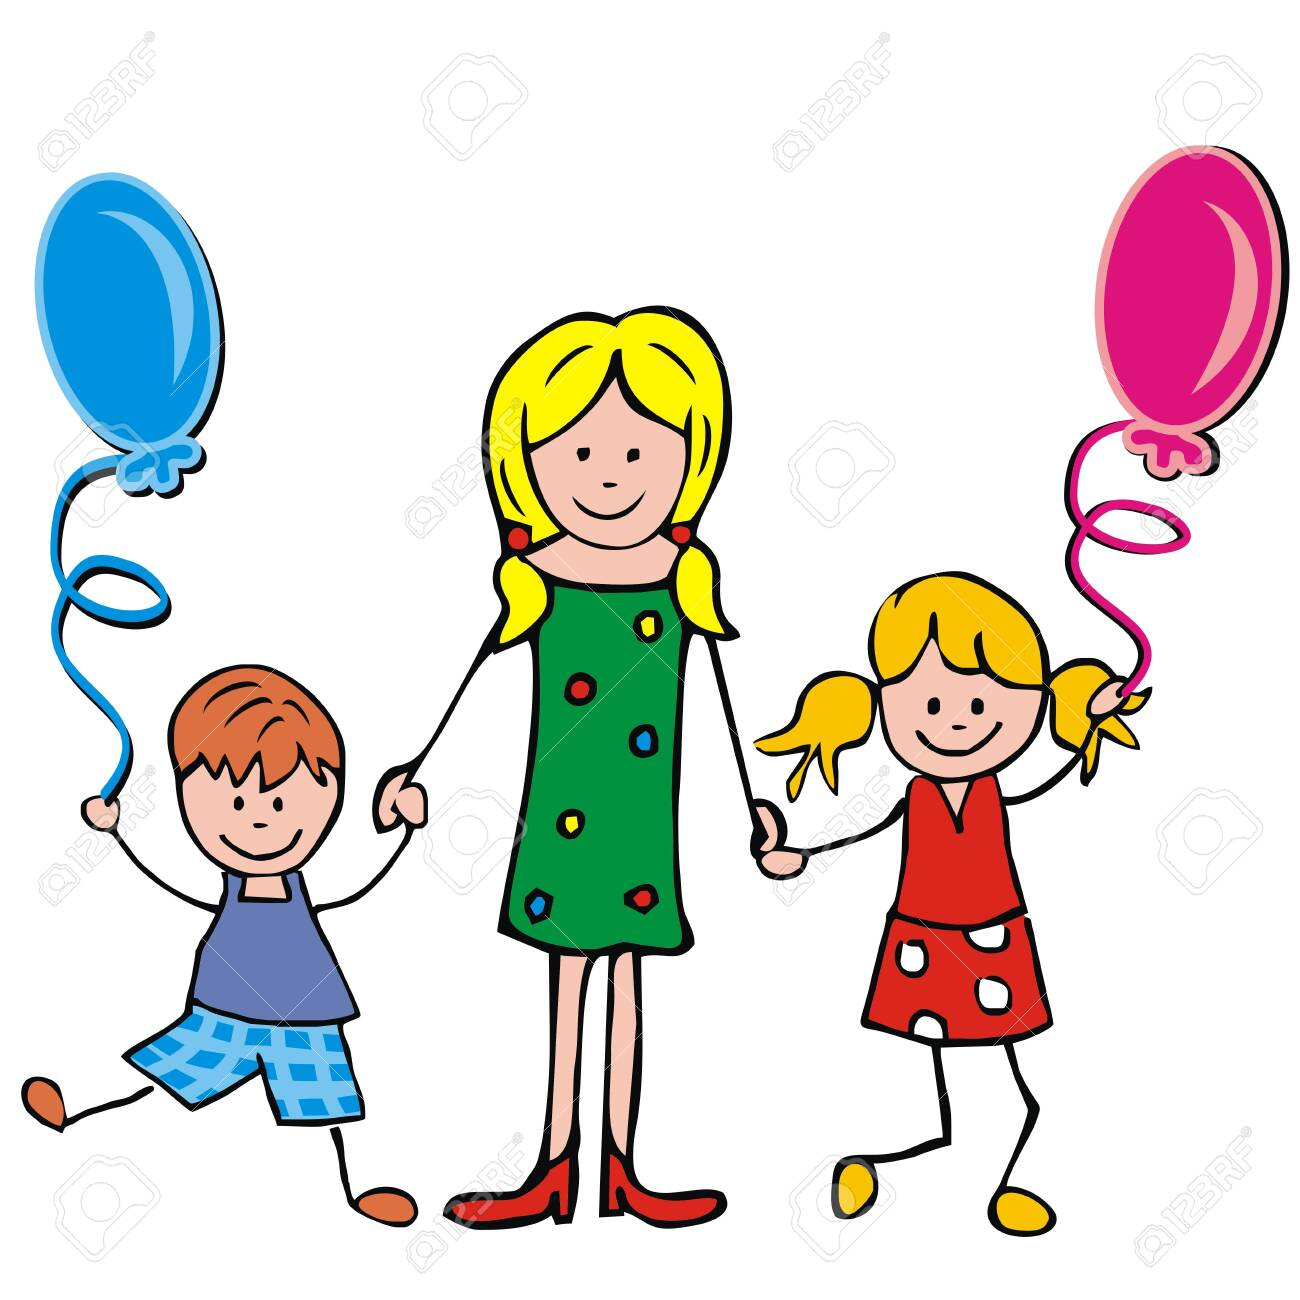 Mother, boy and girl with balloons, vector illustration - 126165949